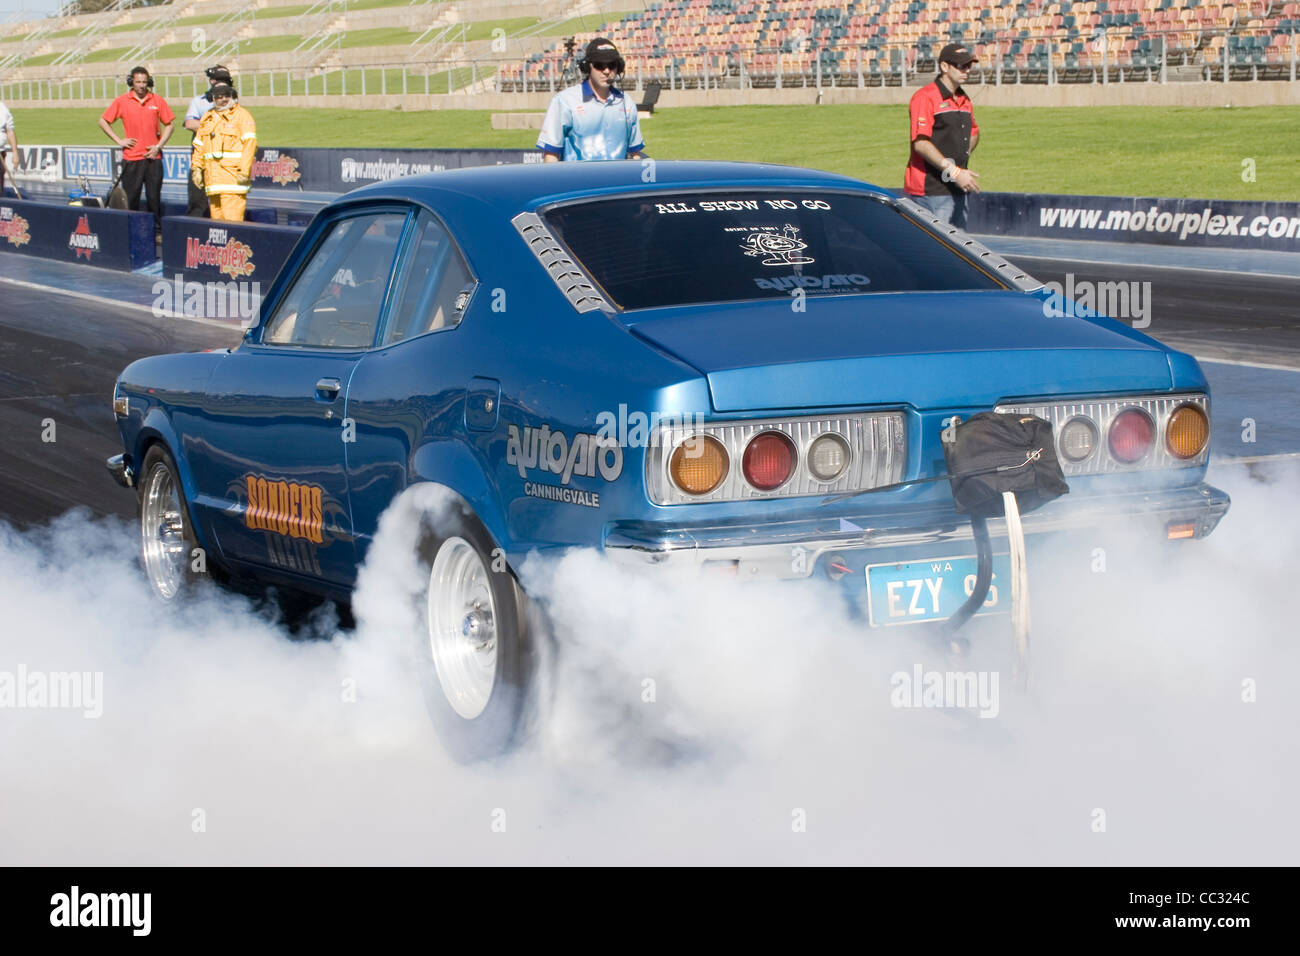 Australian Lee Sanders performs a tire smoking burning rubber burnout in his Mazda RX3 rotary engined drag racing Stock Photo